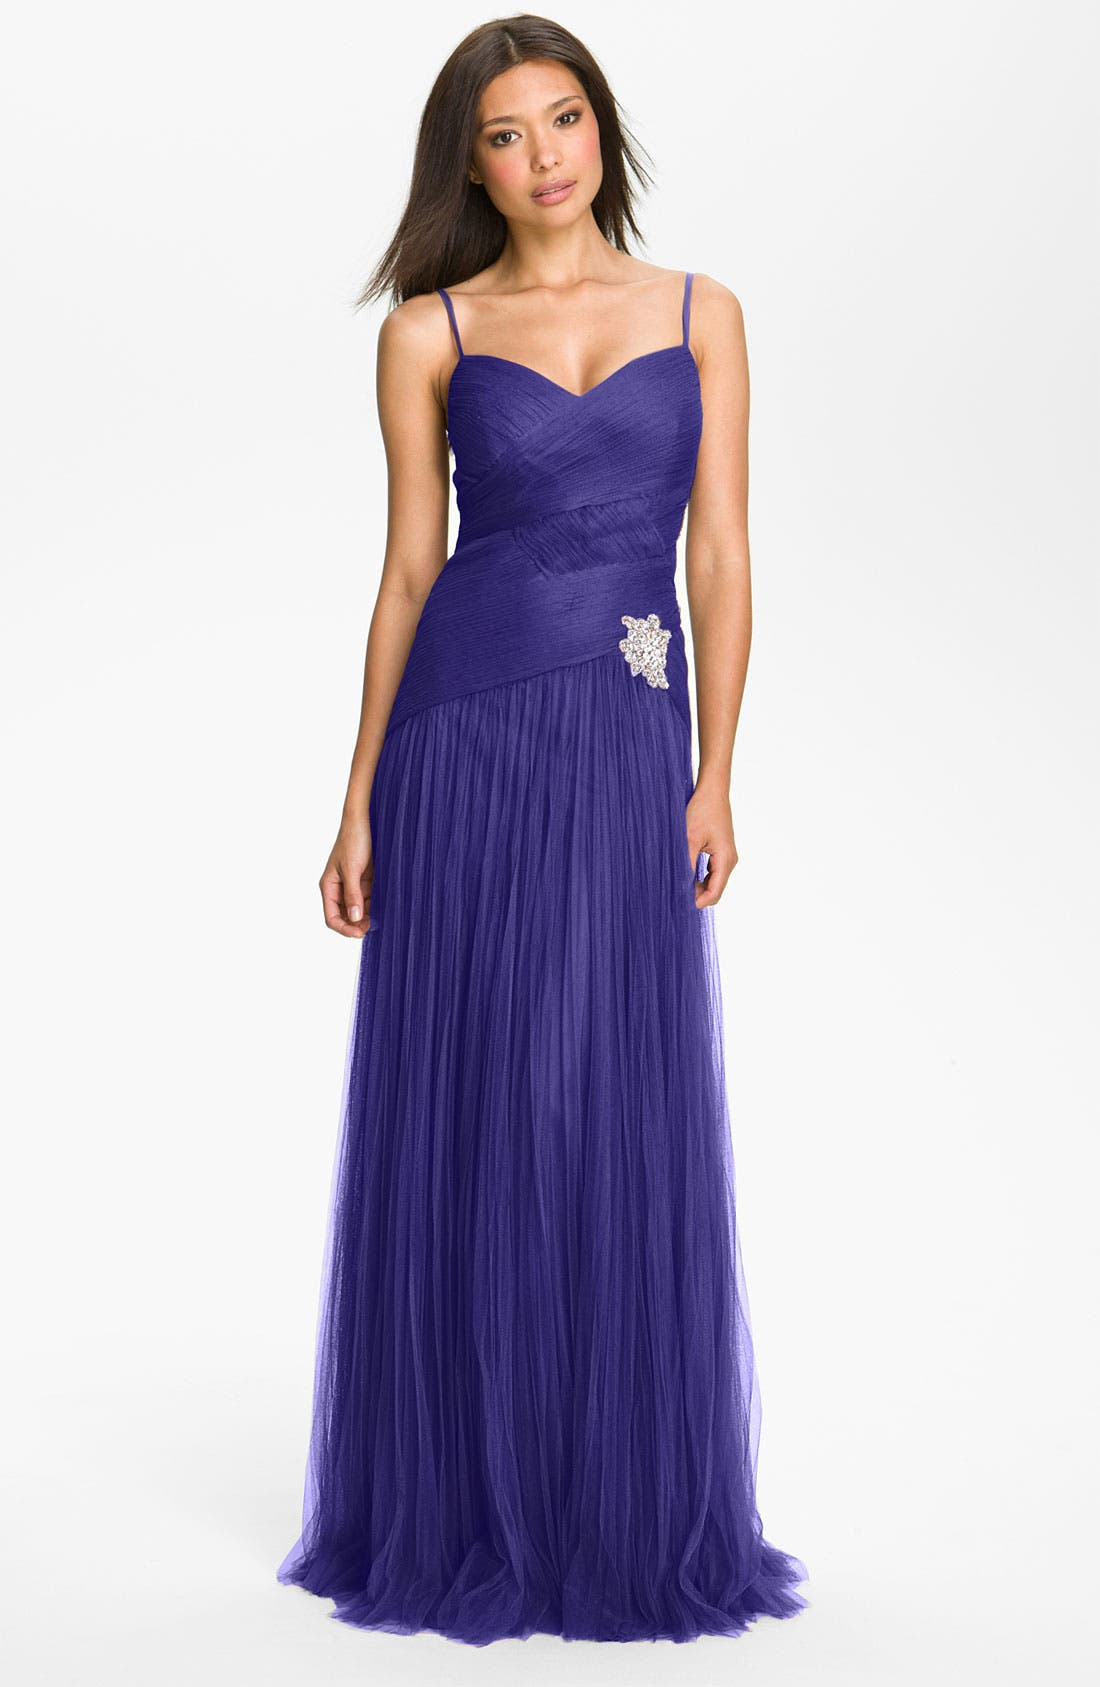 Alternate Image 1 Selected - Veni Infantino Textured Drop Waist Tulle Gown & Shrug